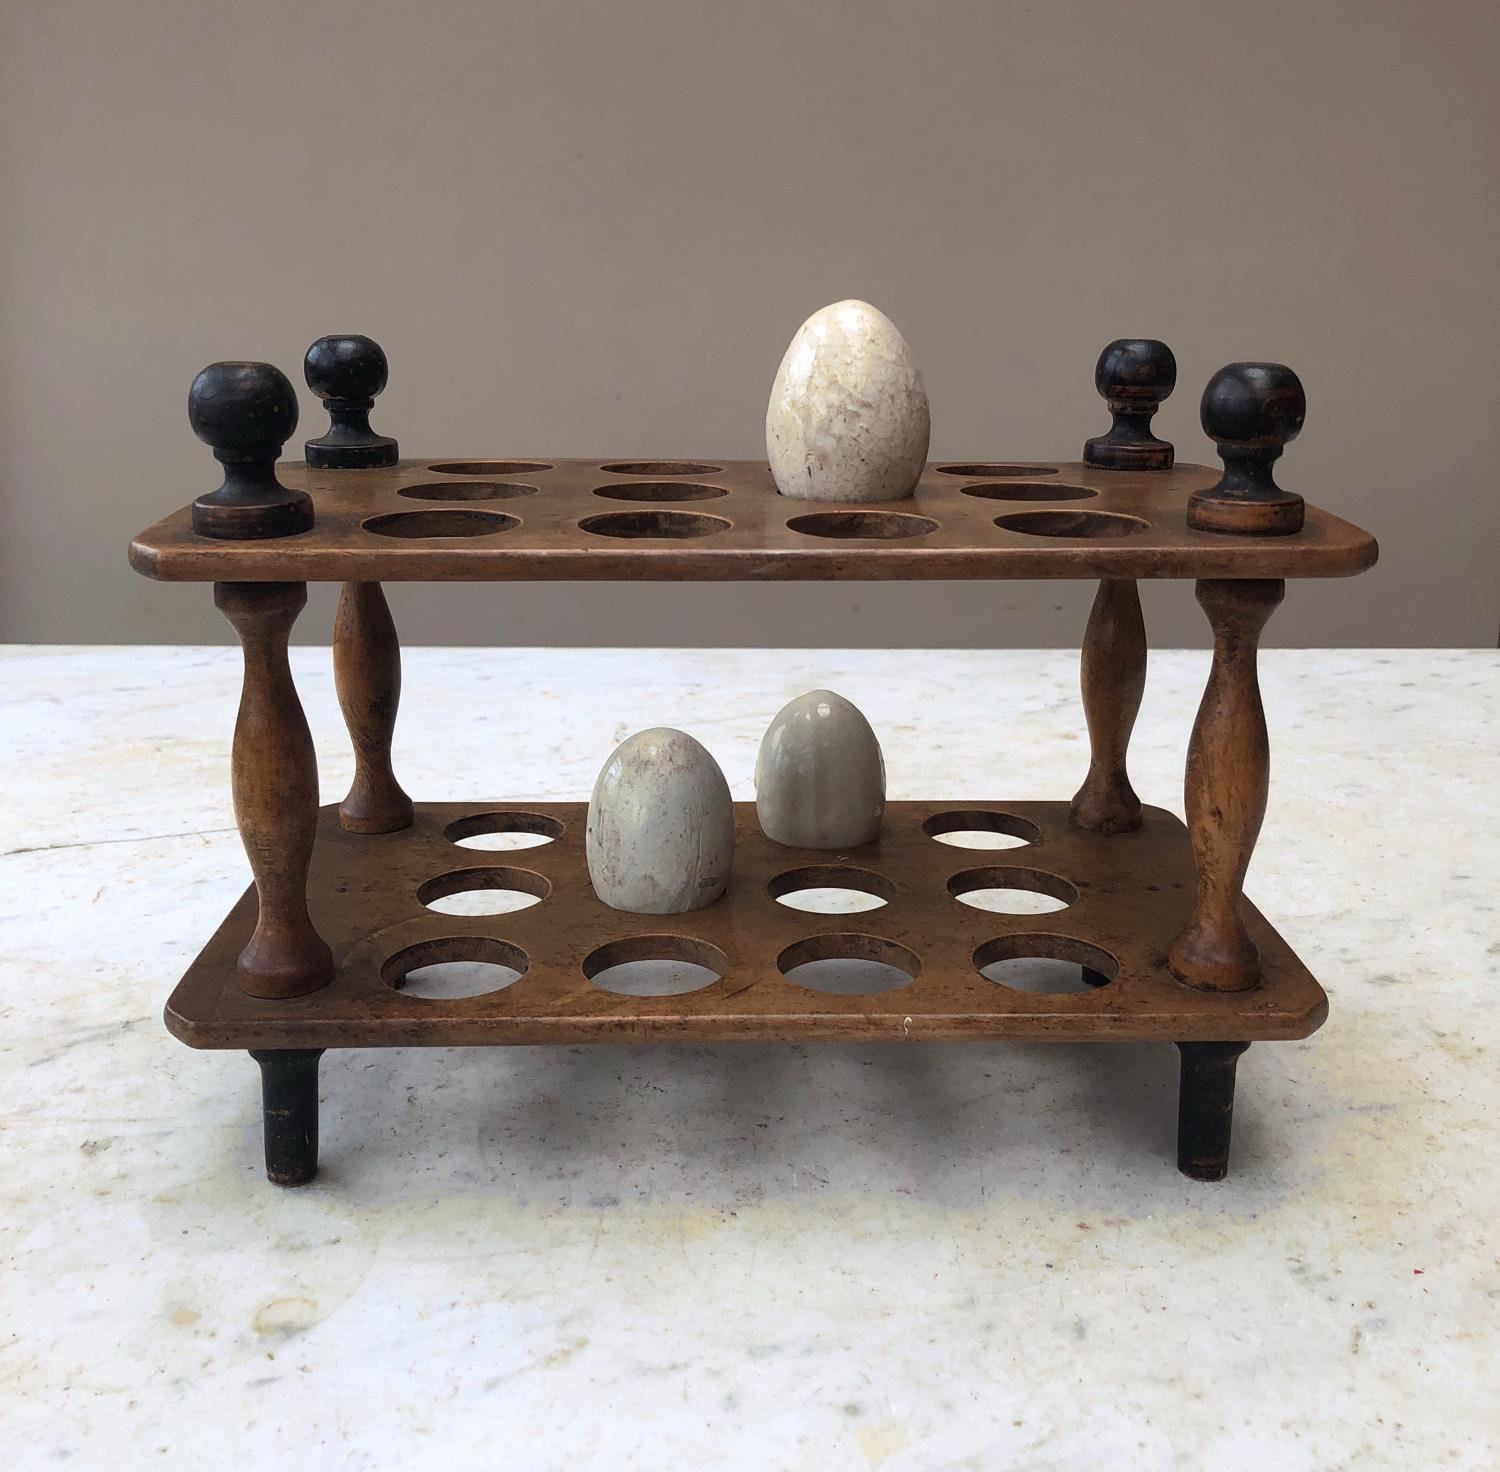 Victorian Treen Two Tier Egg Rack - Two Dozen Eggs